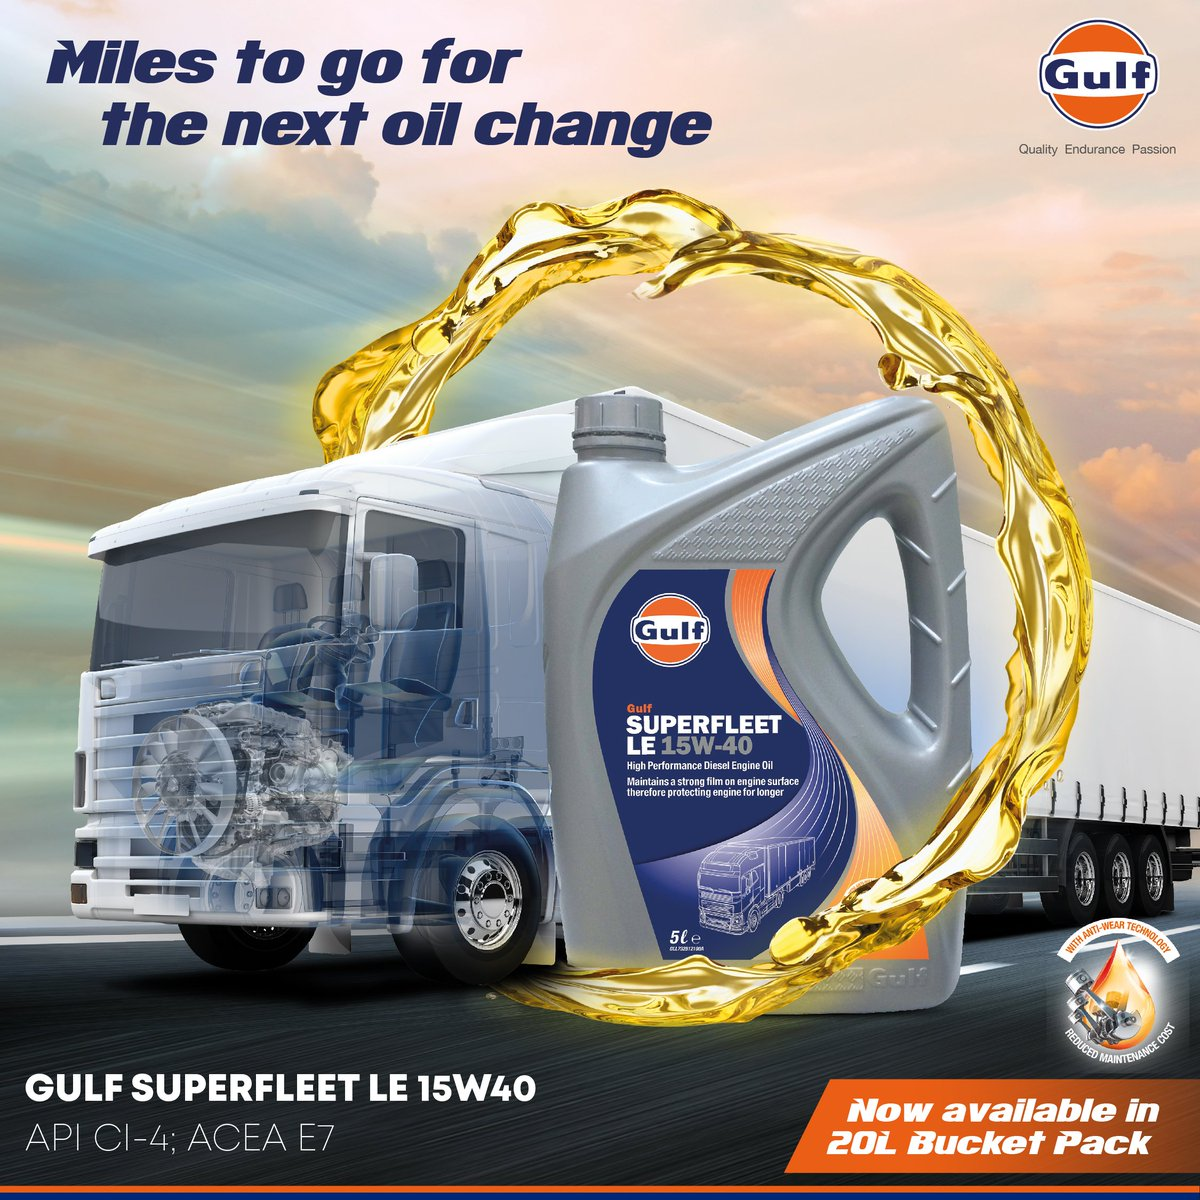 Gulf Oil Middle East (@GulfOilME) | Twitter